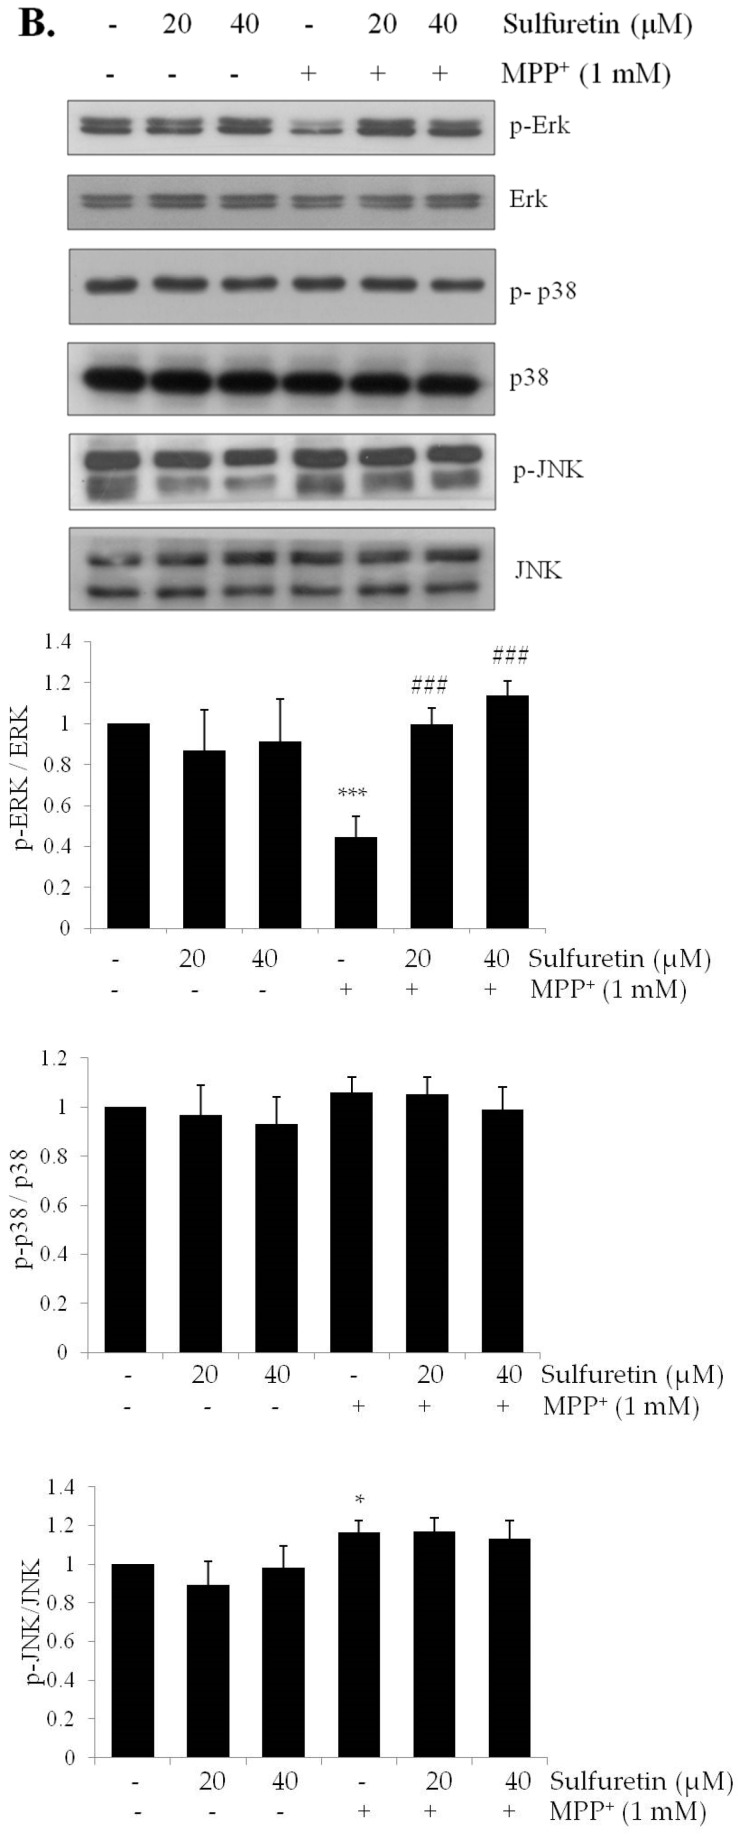 MPP + decreases Akt/GSK3β and ERK phosphorylation and increases p53 expression, whereas sulfuretin reverses its effect. SH-SY5Y cells were pretreated with sulfuretin for 2 h and then treated with MPP + for 24 h. After cell lysis, the extracted proteins were subjected to Western blot analysis using specific antibodies. Protein levels of ( A ) p-Akt, Akt, p-GSK3β, GSK3β, p-CREB, and GAPDH; ( B ) p-ERK, ERK, p-p38, p38, p-JNK, and JNK were determined. Representative blots and their densitometric quantification are shown. Values are presented relative to control as mean fold change ± S.D. ( n = 3). Differences are statistically significant at * p